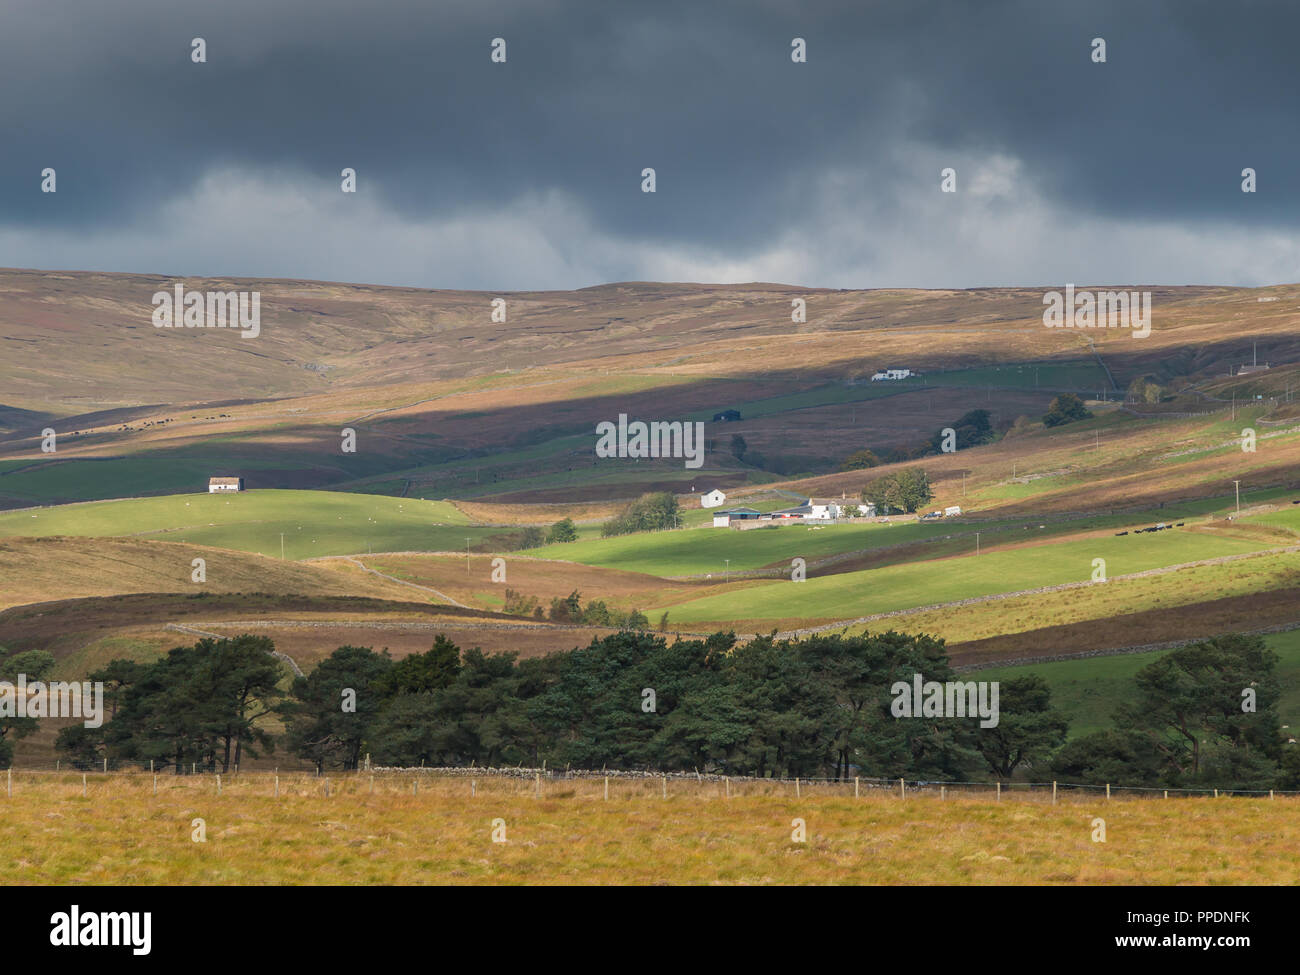 north-pennines-aonb-landscape-lingy-hill-farm-harwood-upper-teesdale-lit-by-strong-autumn-sunshine-under-a-stormy-sky-PPDNFK.jpg